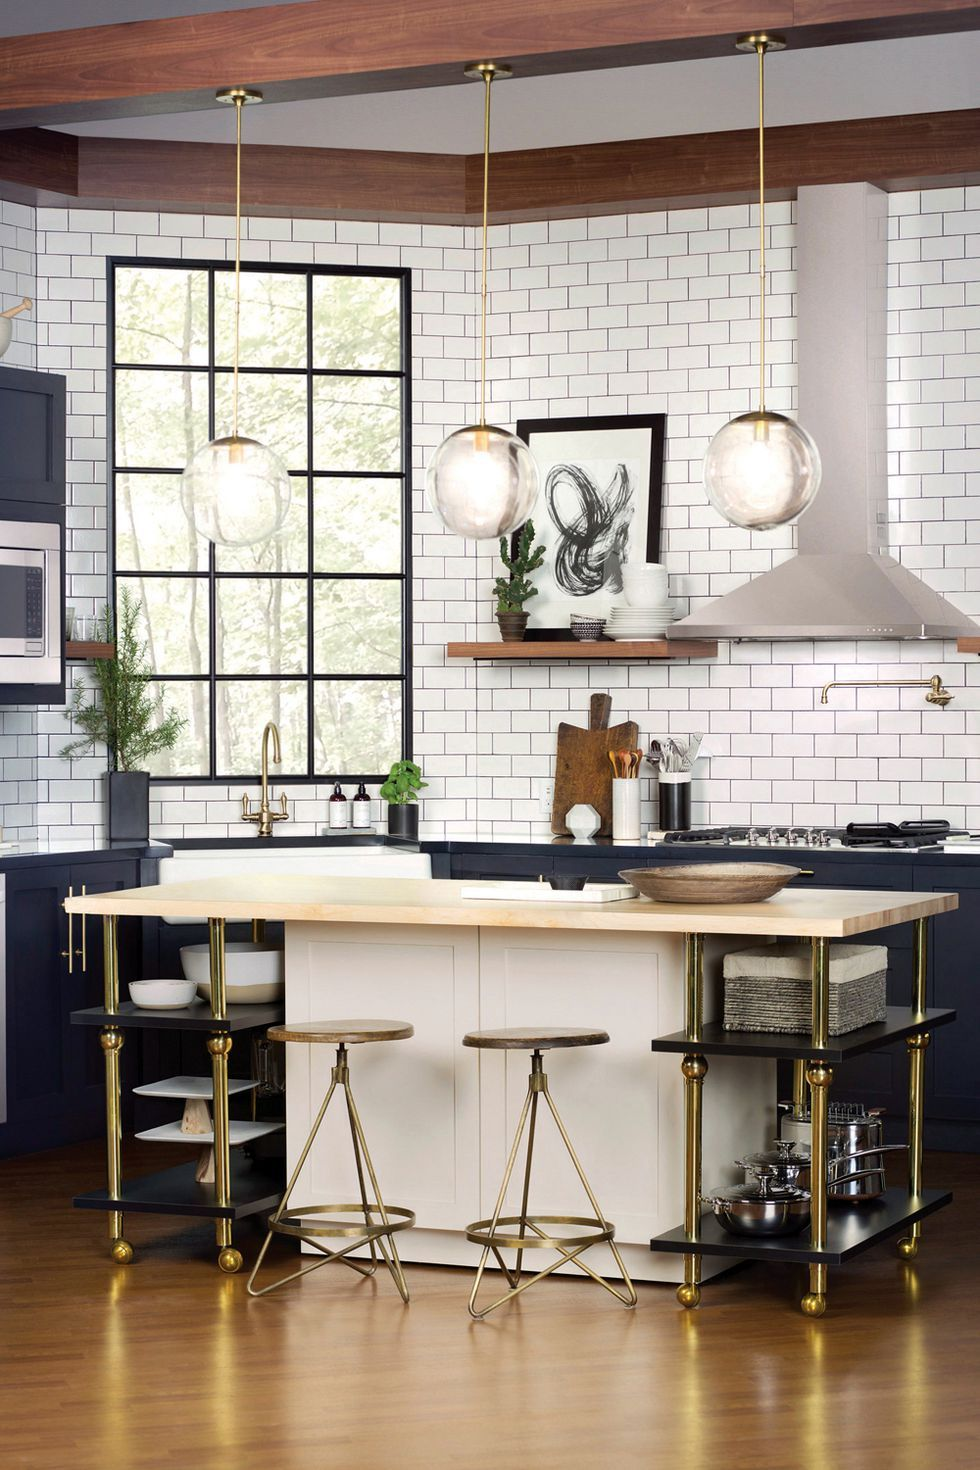 black and white tile kitchen best way to clean wood cabinets in 26 gorgeous kitchens ideas for decor